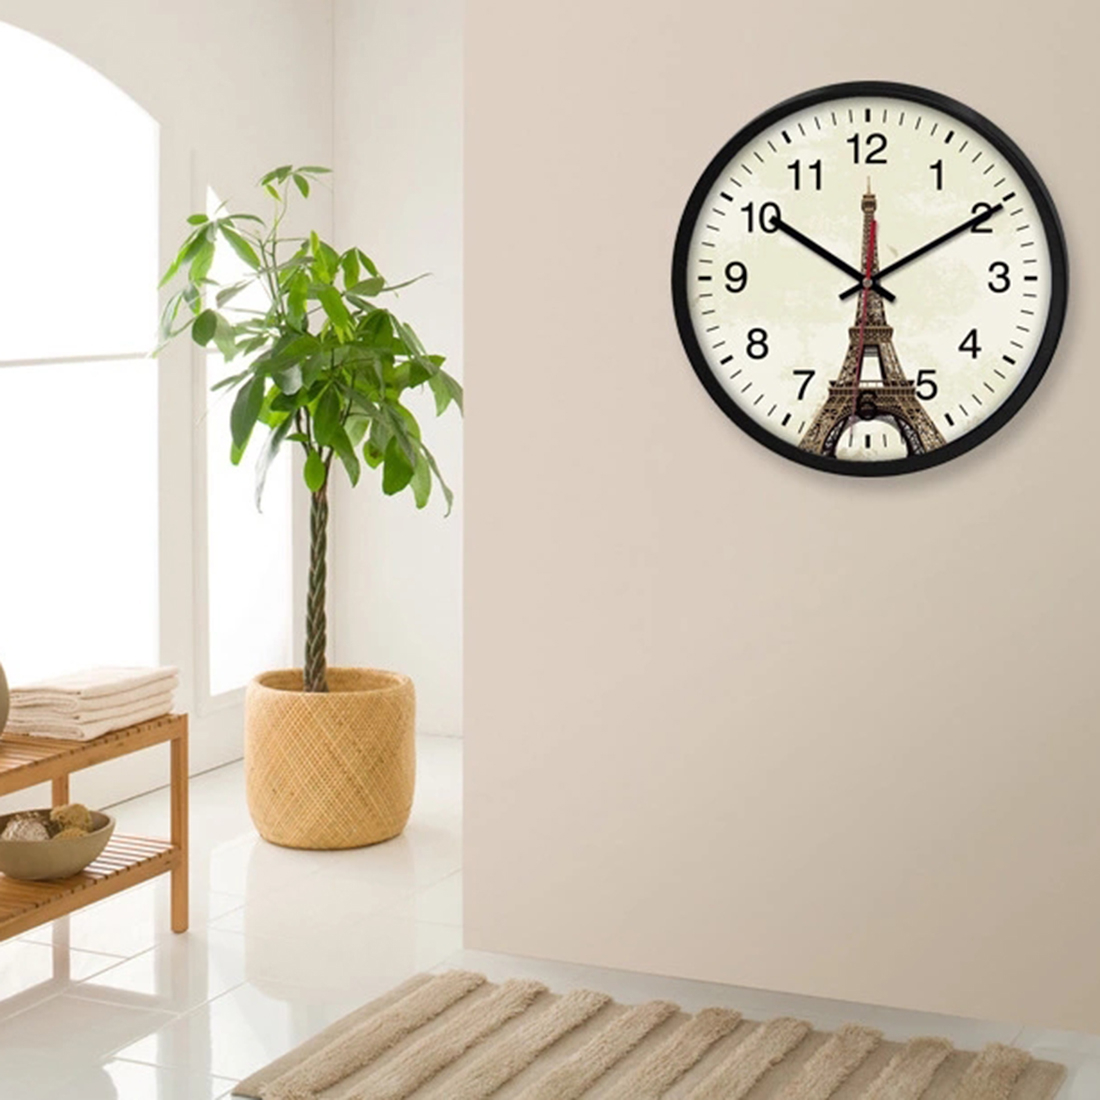 Fancy Homingdeco 12 Inch Large Decorative Wall Clocks Modern Design Silent regarding Lovely Living Room Wall Clocks